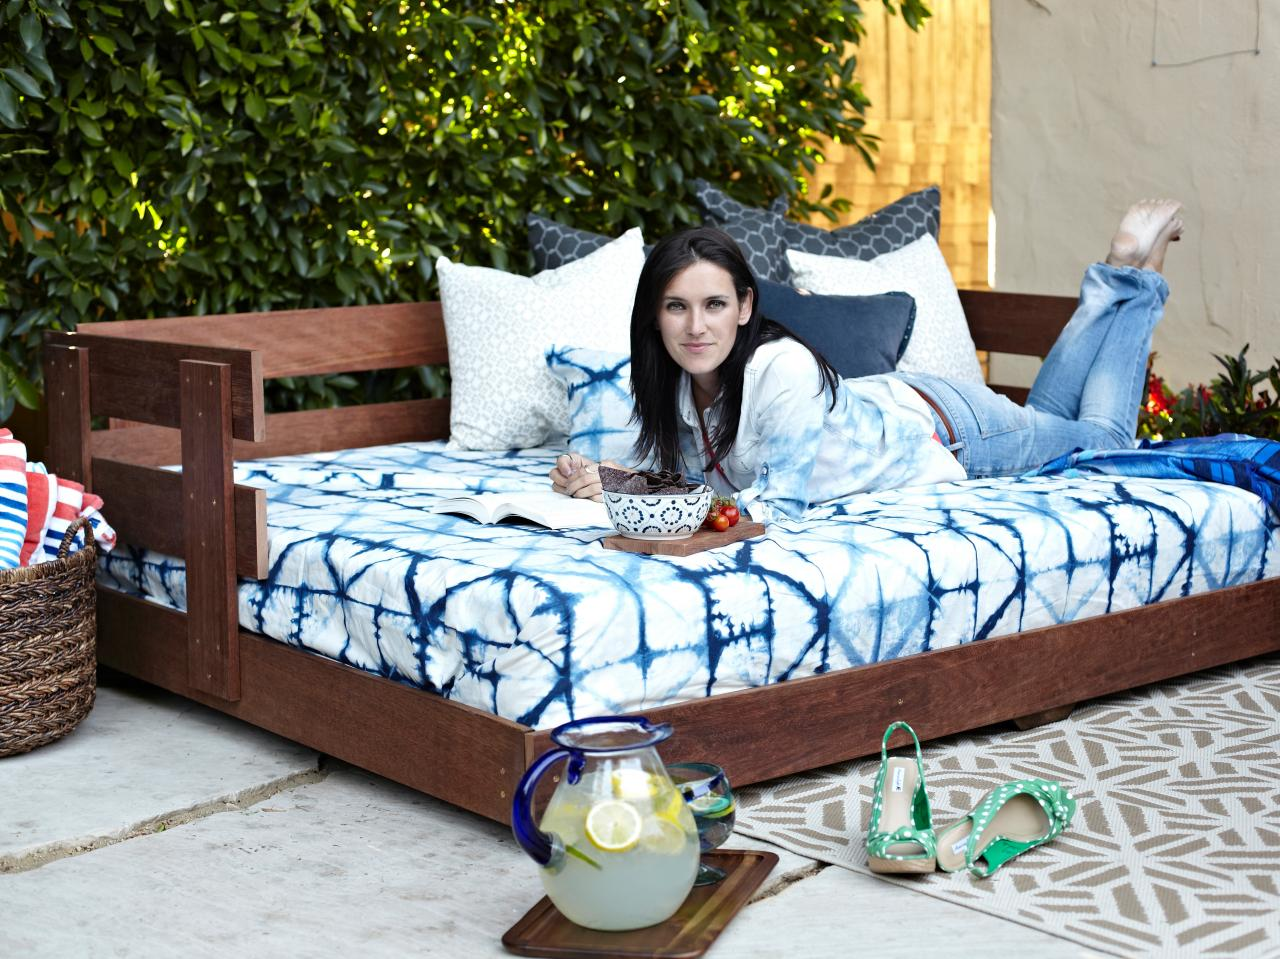 Build a Lounge-Worthy, Outdoor Daybed | how-tos | DIY